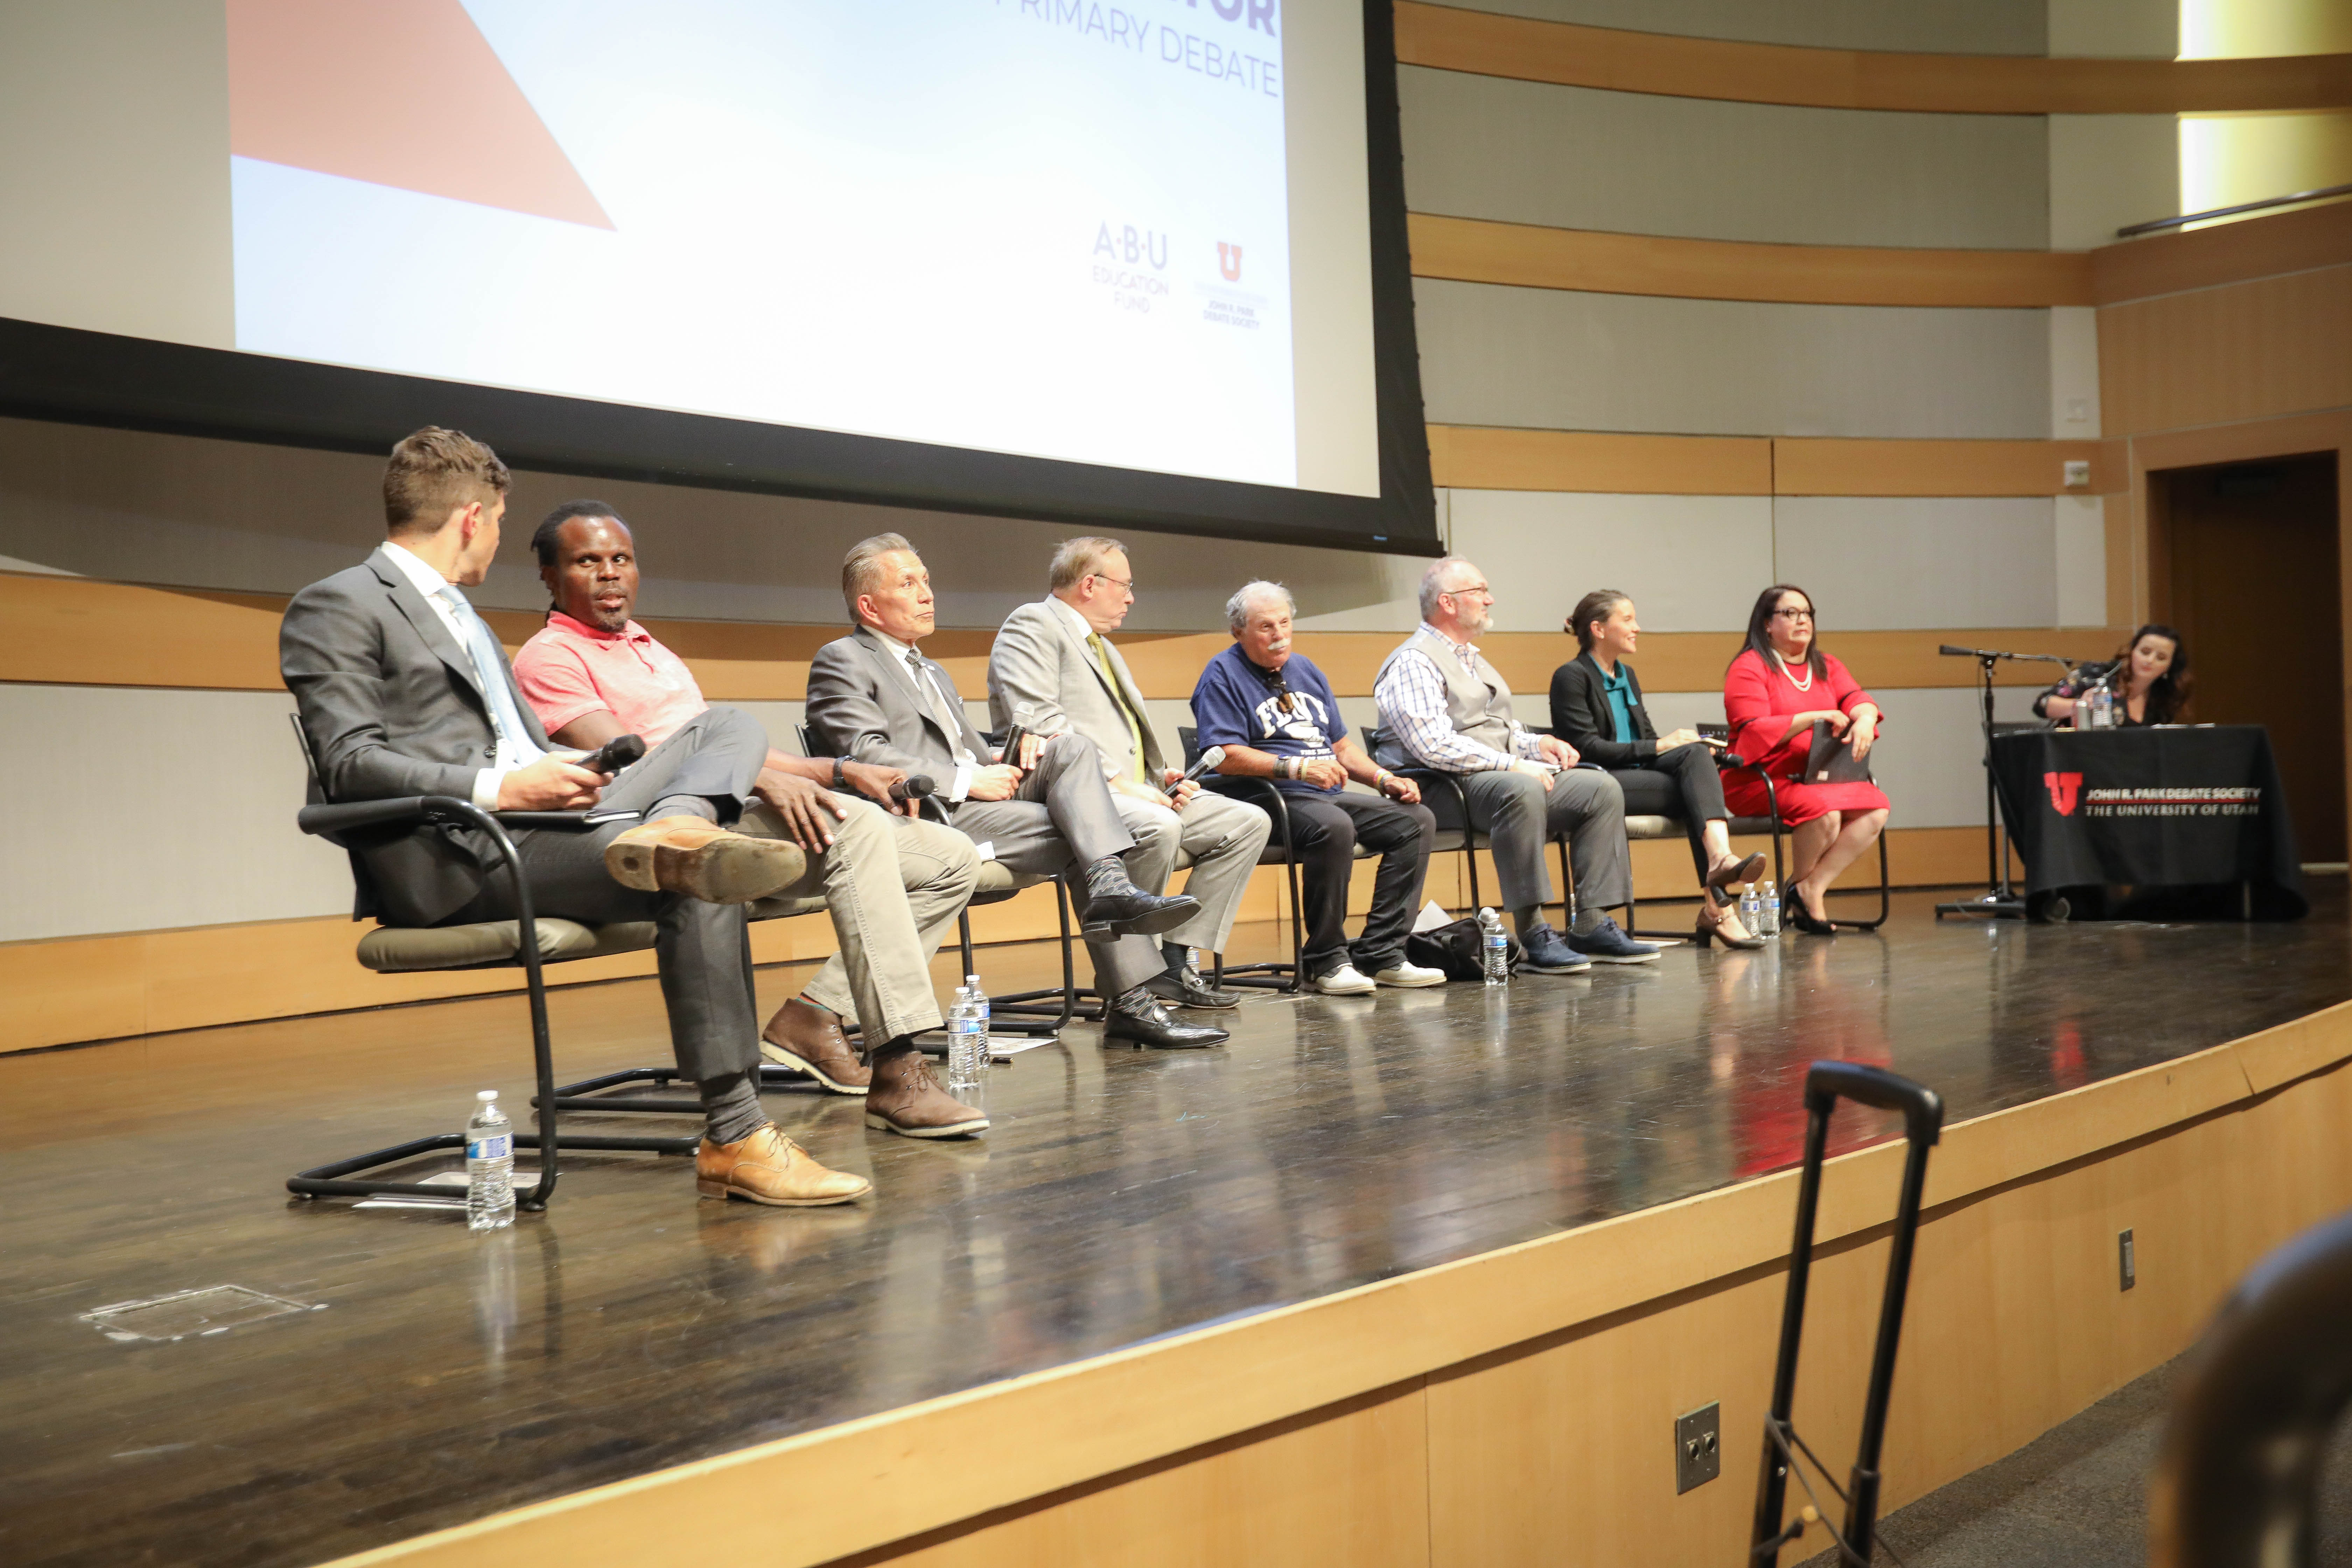 The Primary Debate for Mayoral Candidates in Salt Lake City, Utah on Wednesday, June 26th. (Photo by Cassandra Palor | Daily Utah Chronicle)